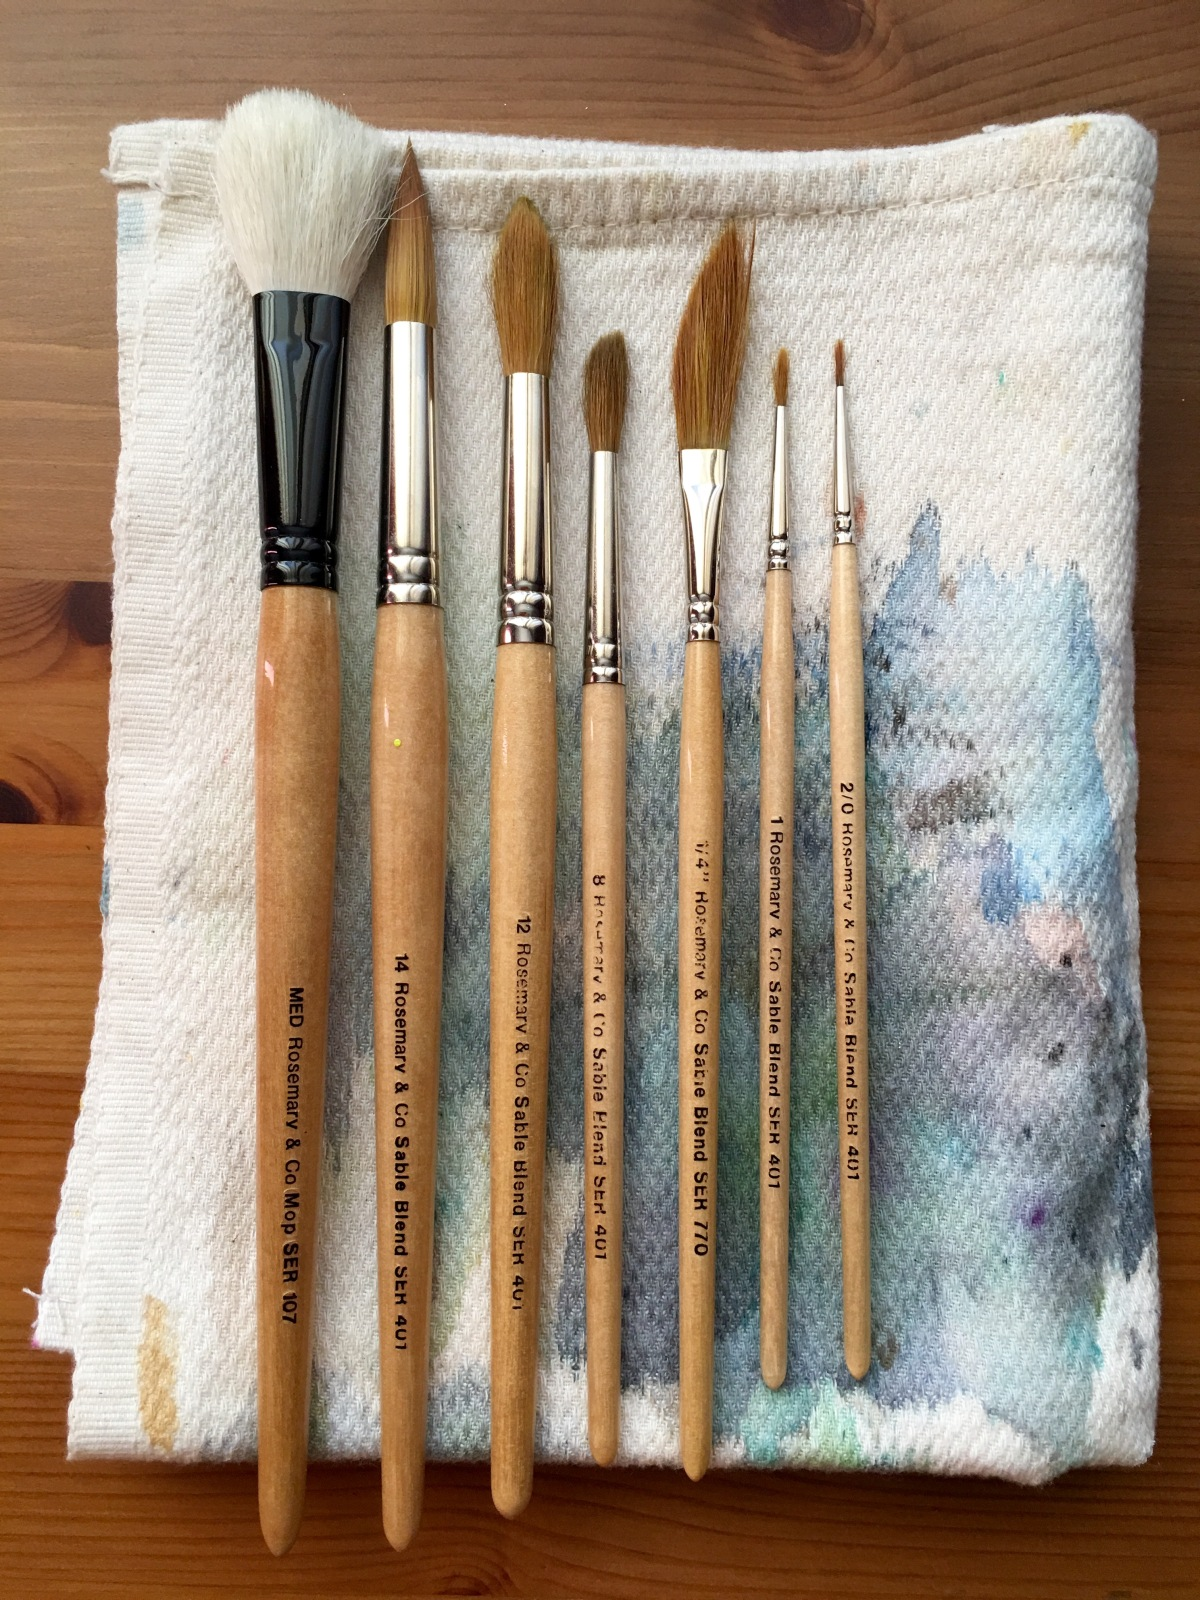 Rosemanry & Co. brushes, series 401 abd 107